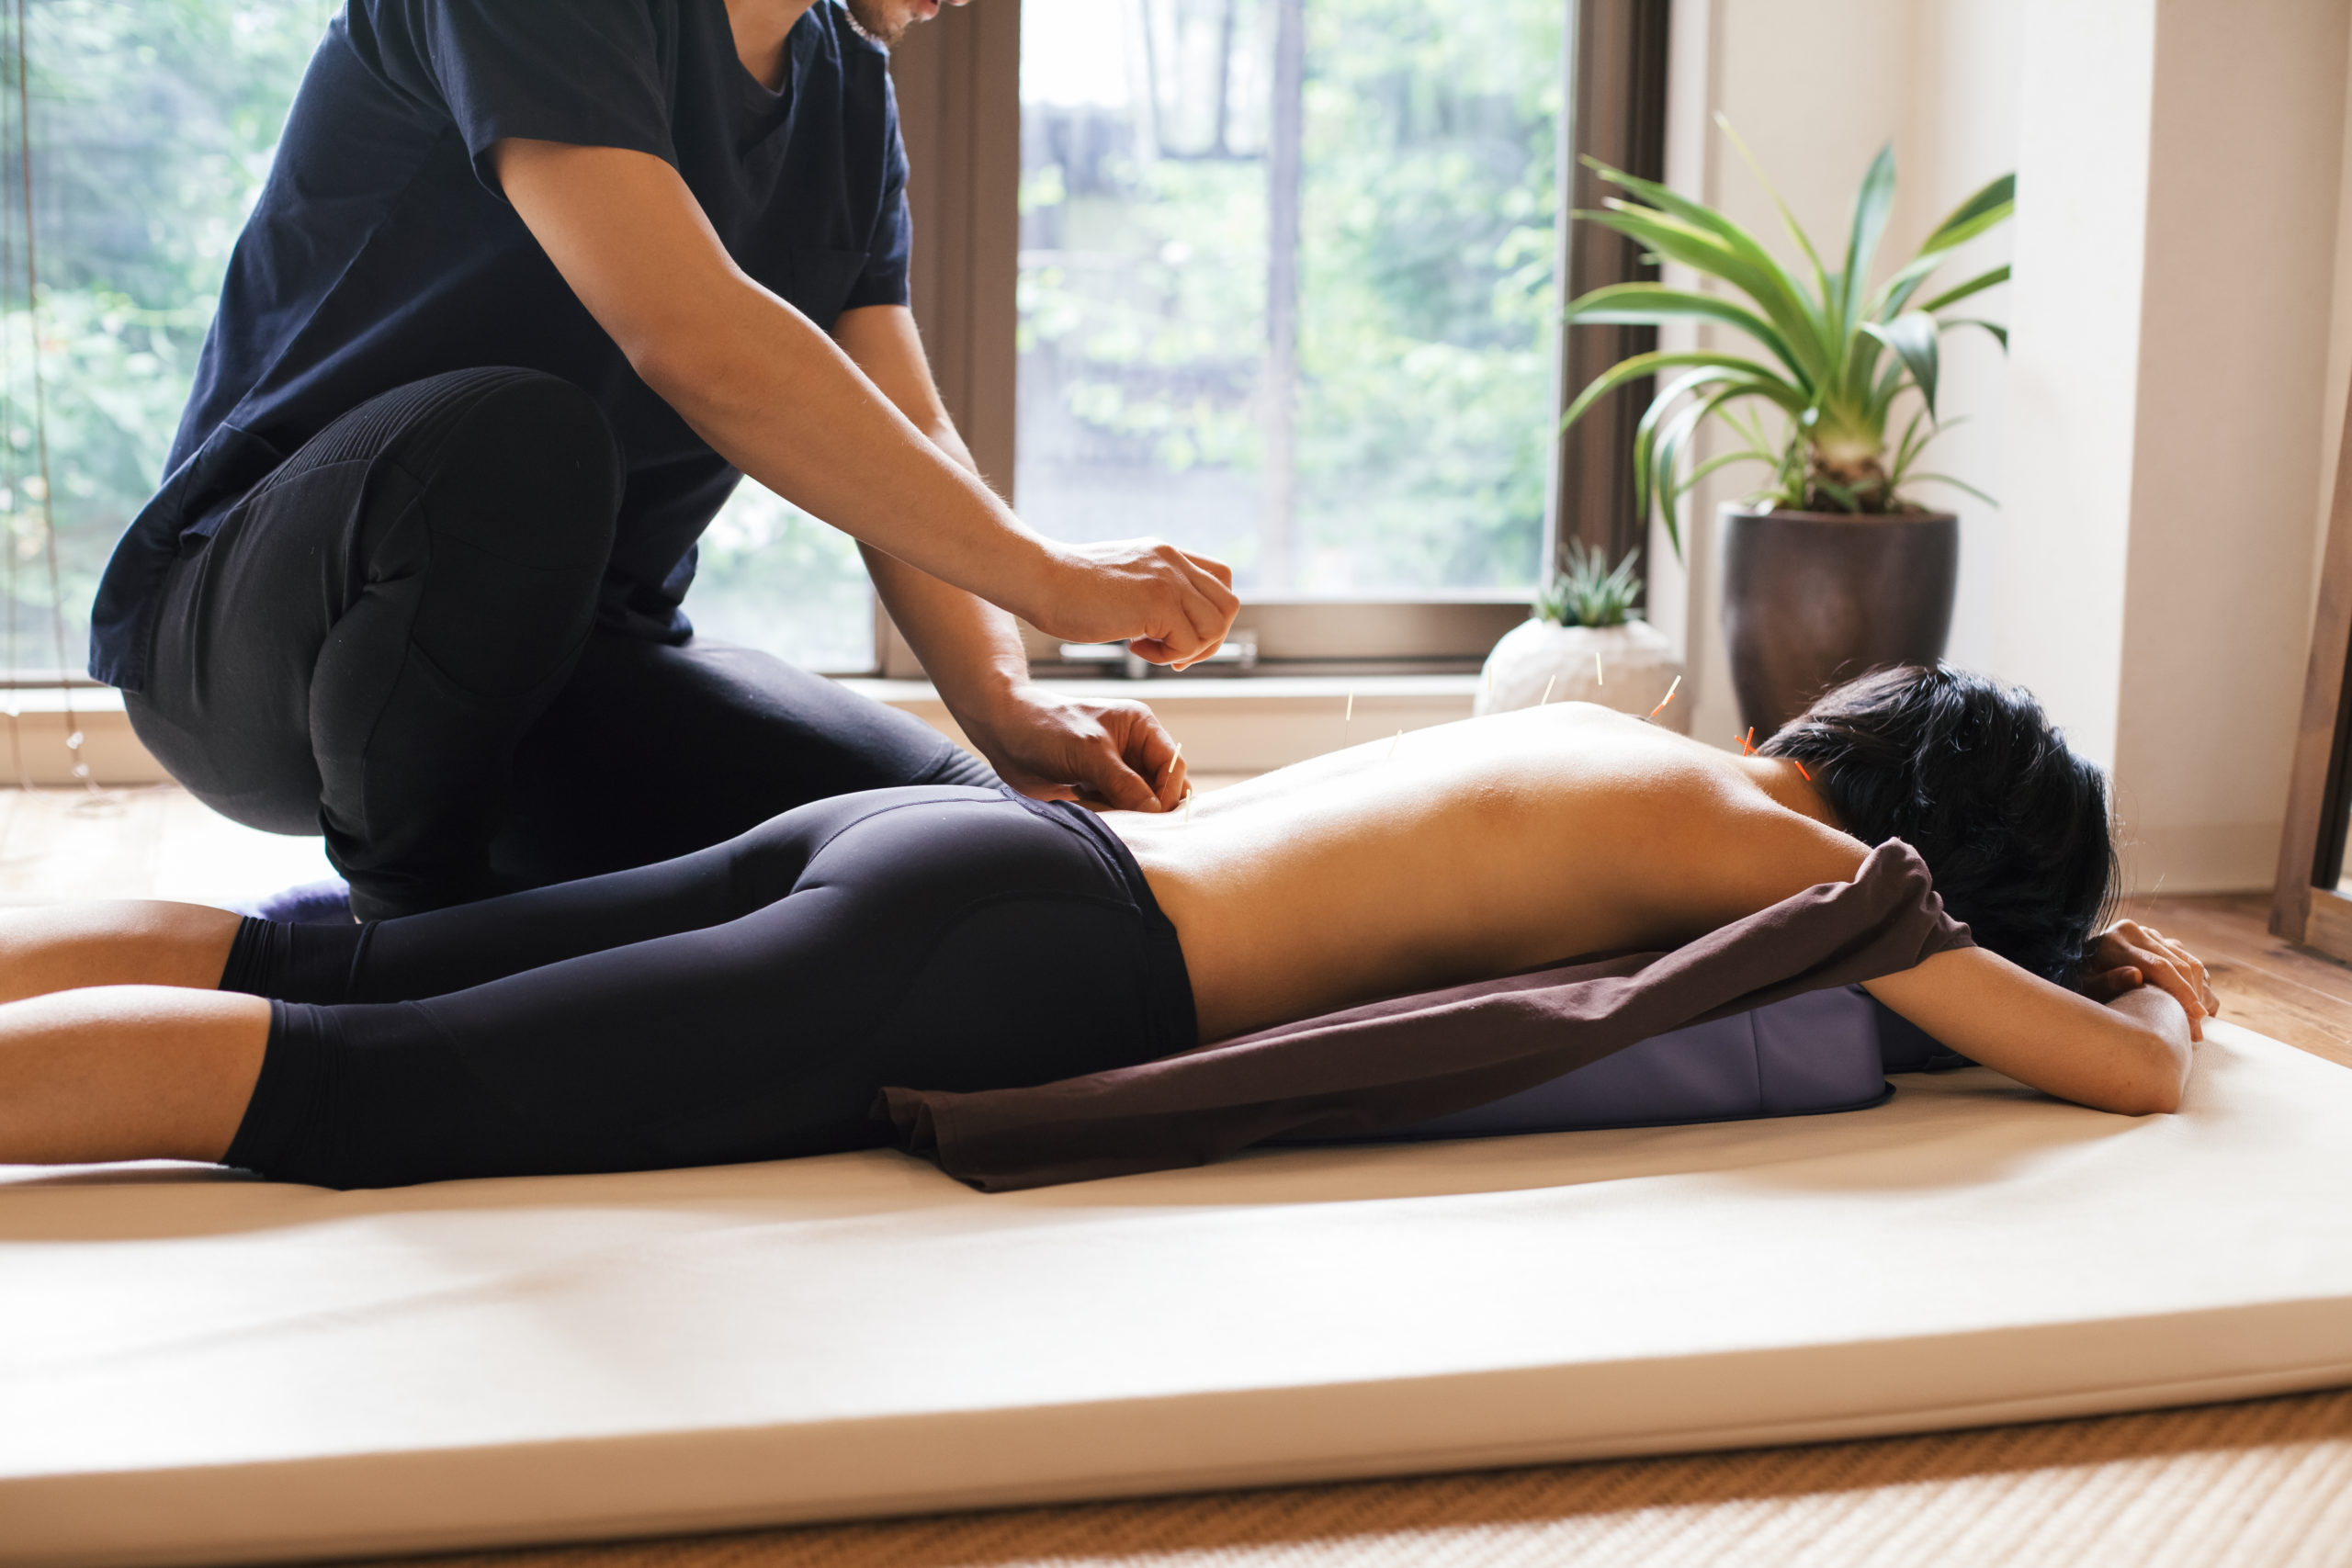 Acupuncture session in a Japanese medical study